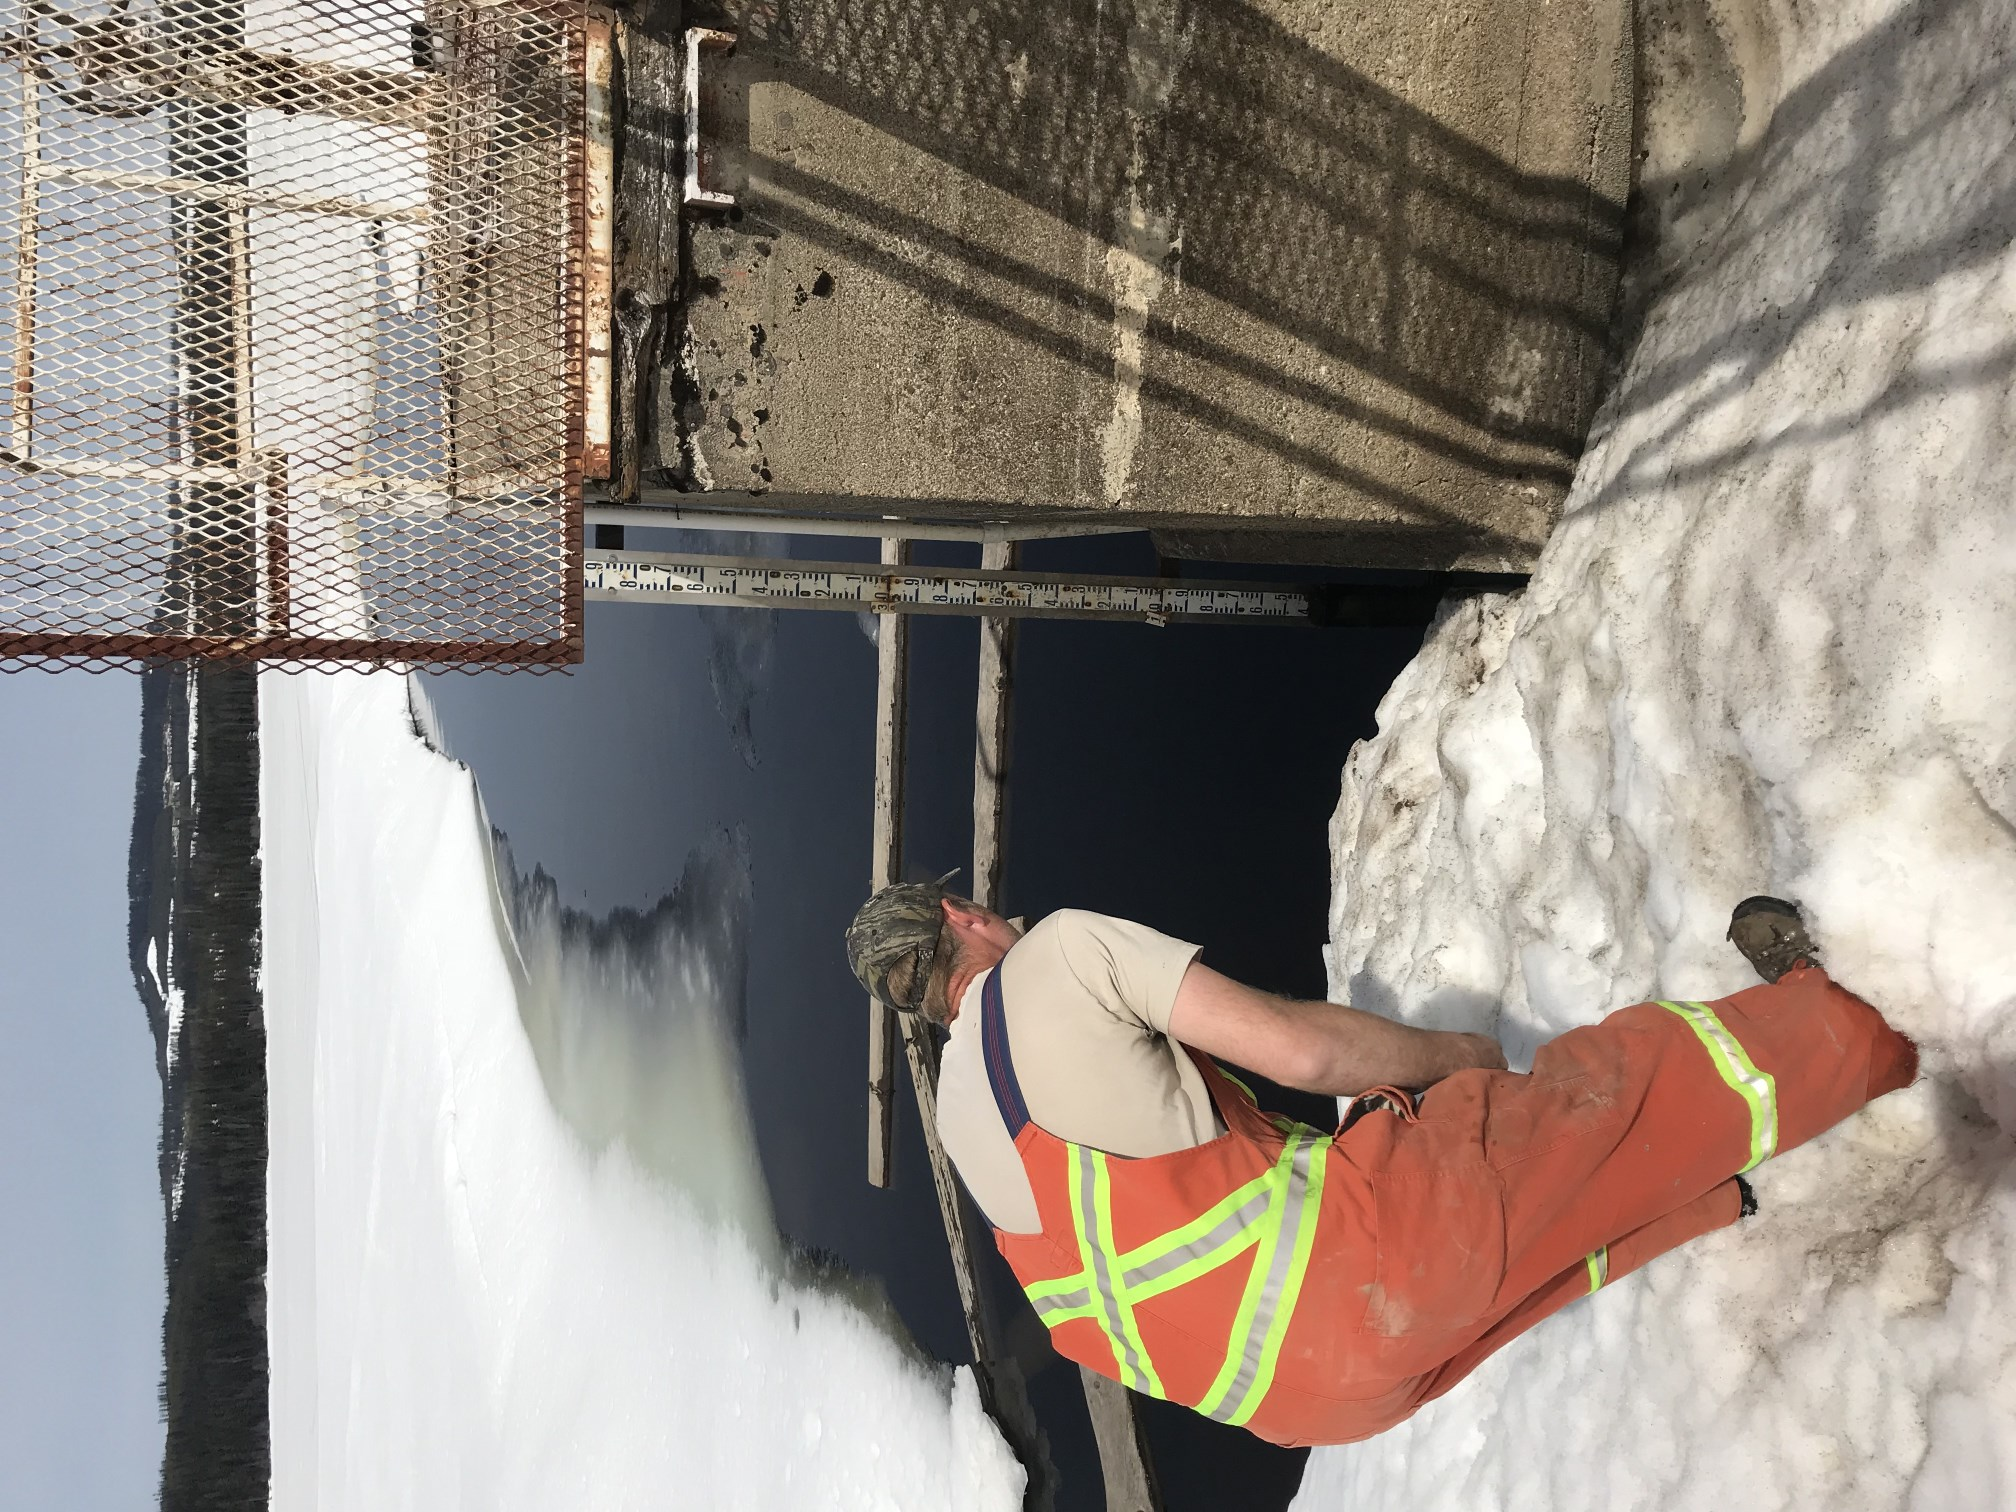 Water Utility technician inspects water level at Beaver Lake control 2018-04-24